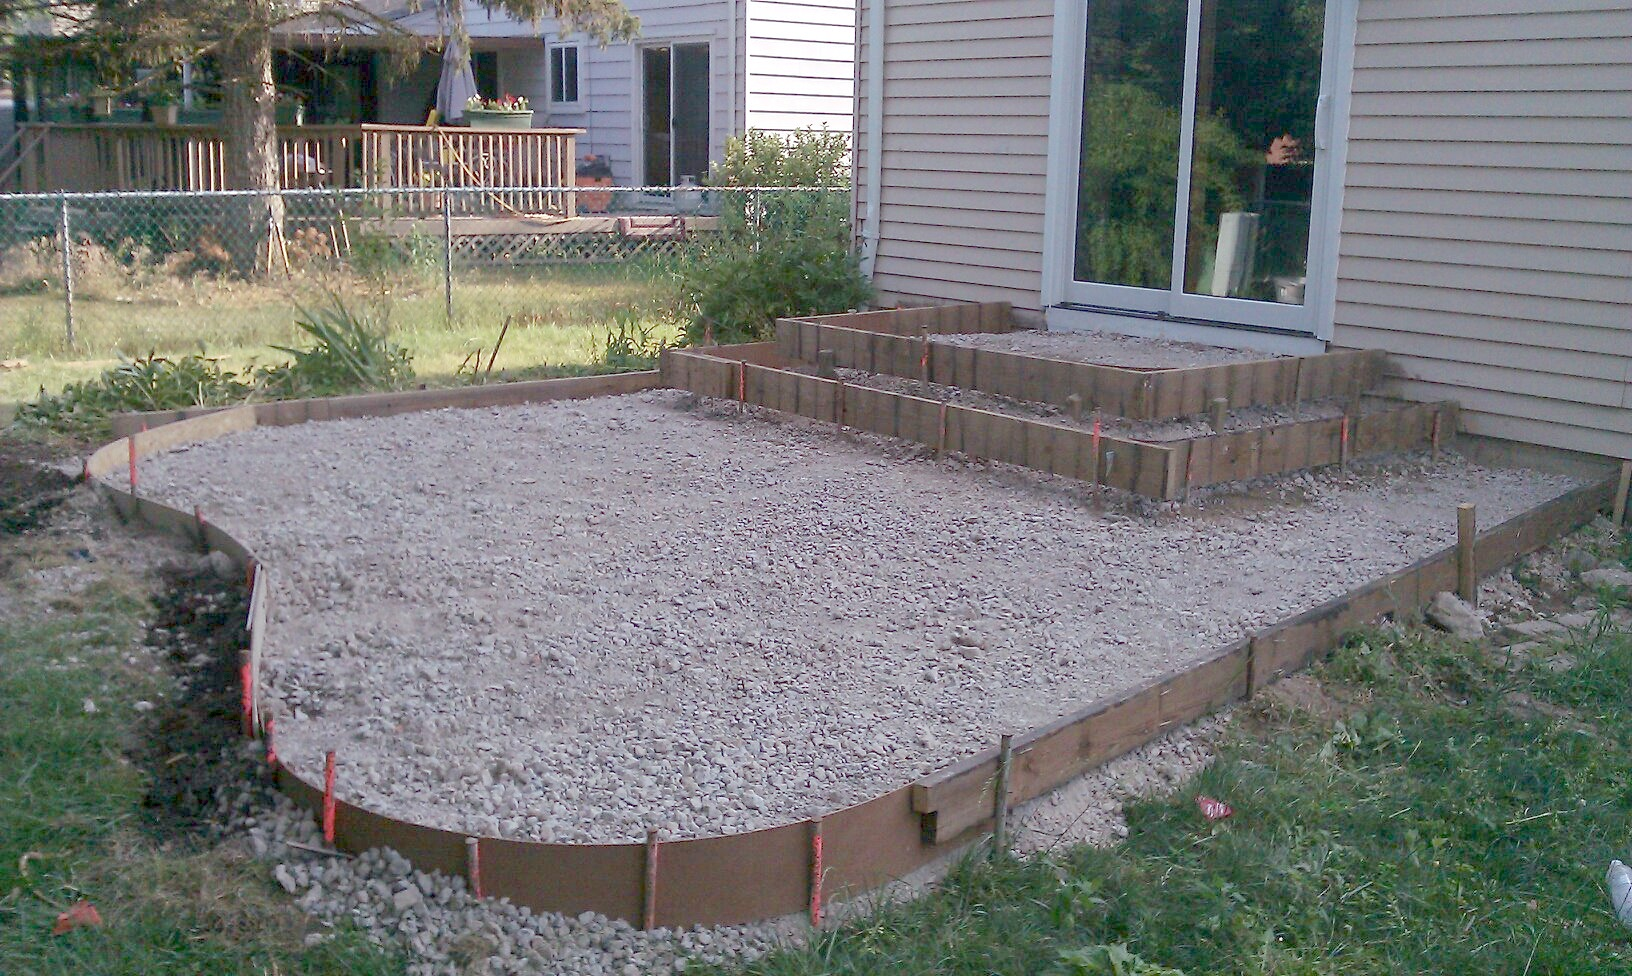 Our new patio - somewhat abstract on Concrete Yard Ideas id=18250